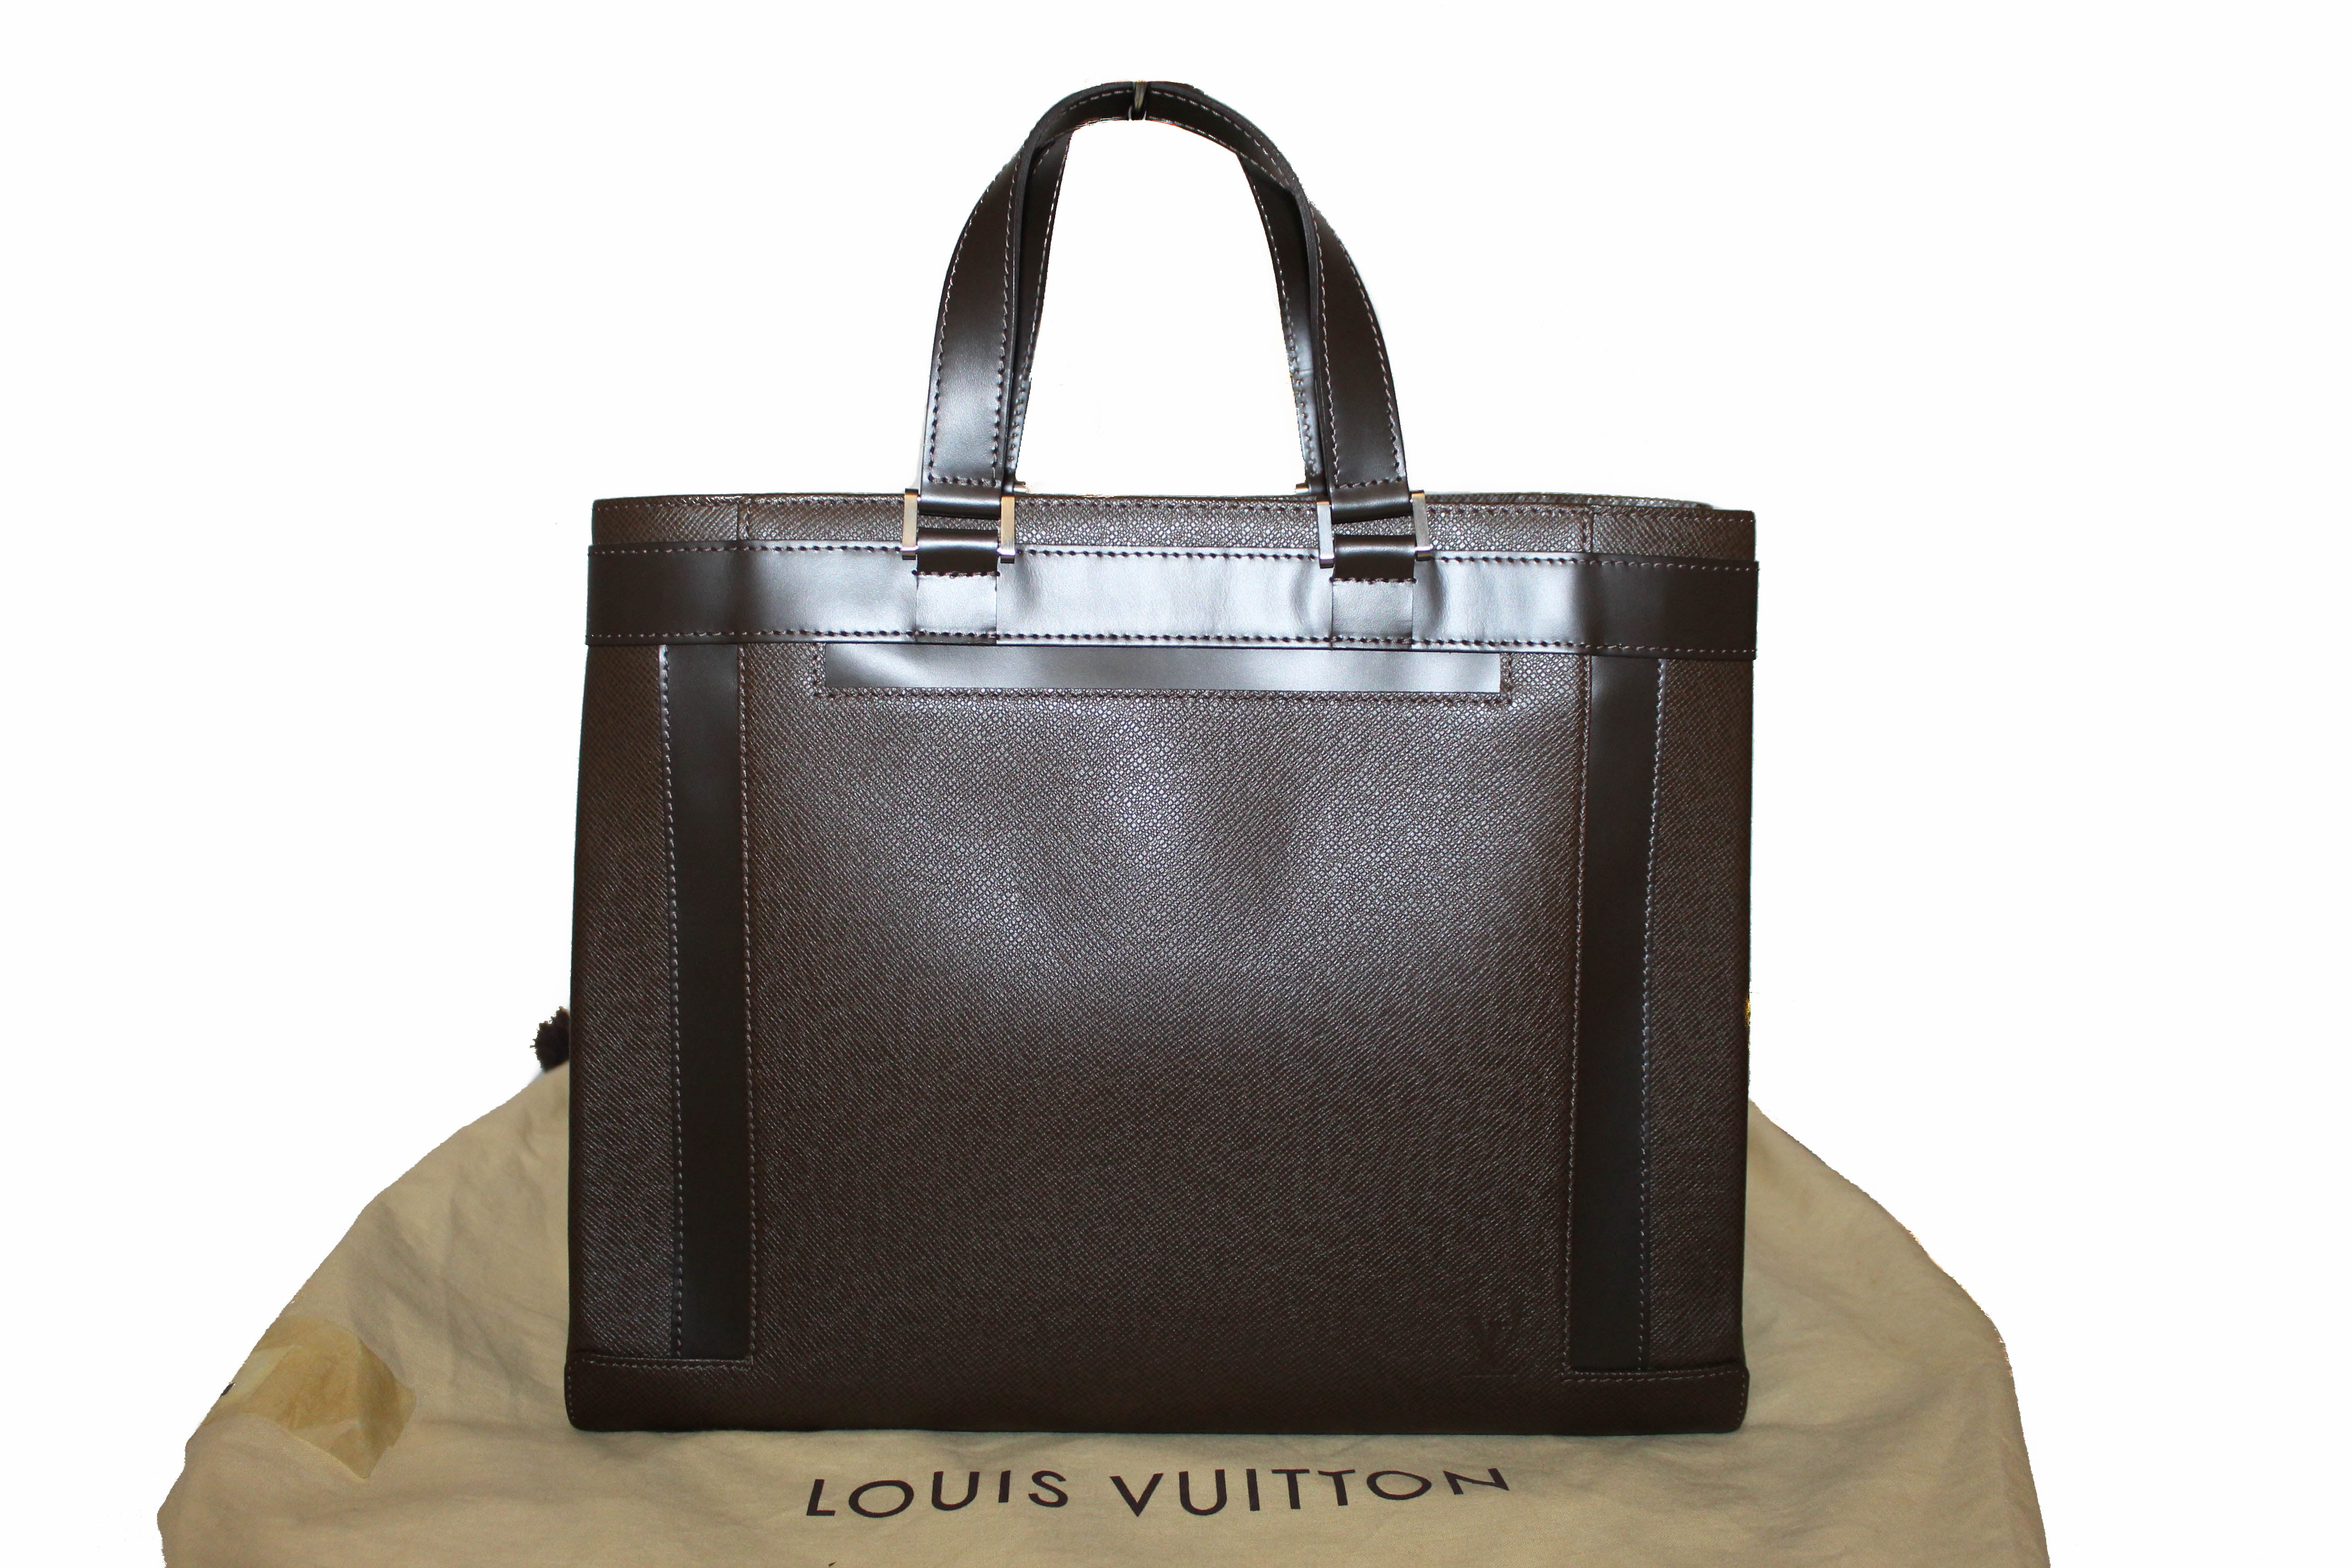 Authentic Louis Vuitton Brown Taiga Leather Grizzli Kasbek PM Tote Hand Bag